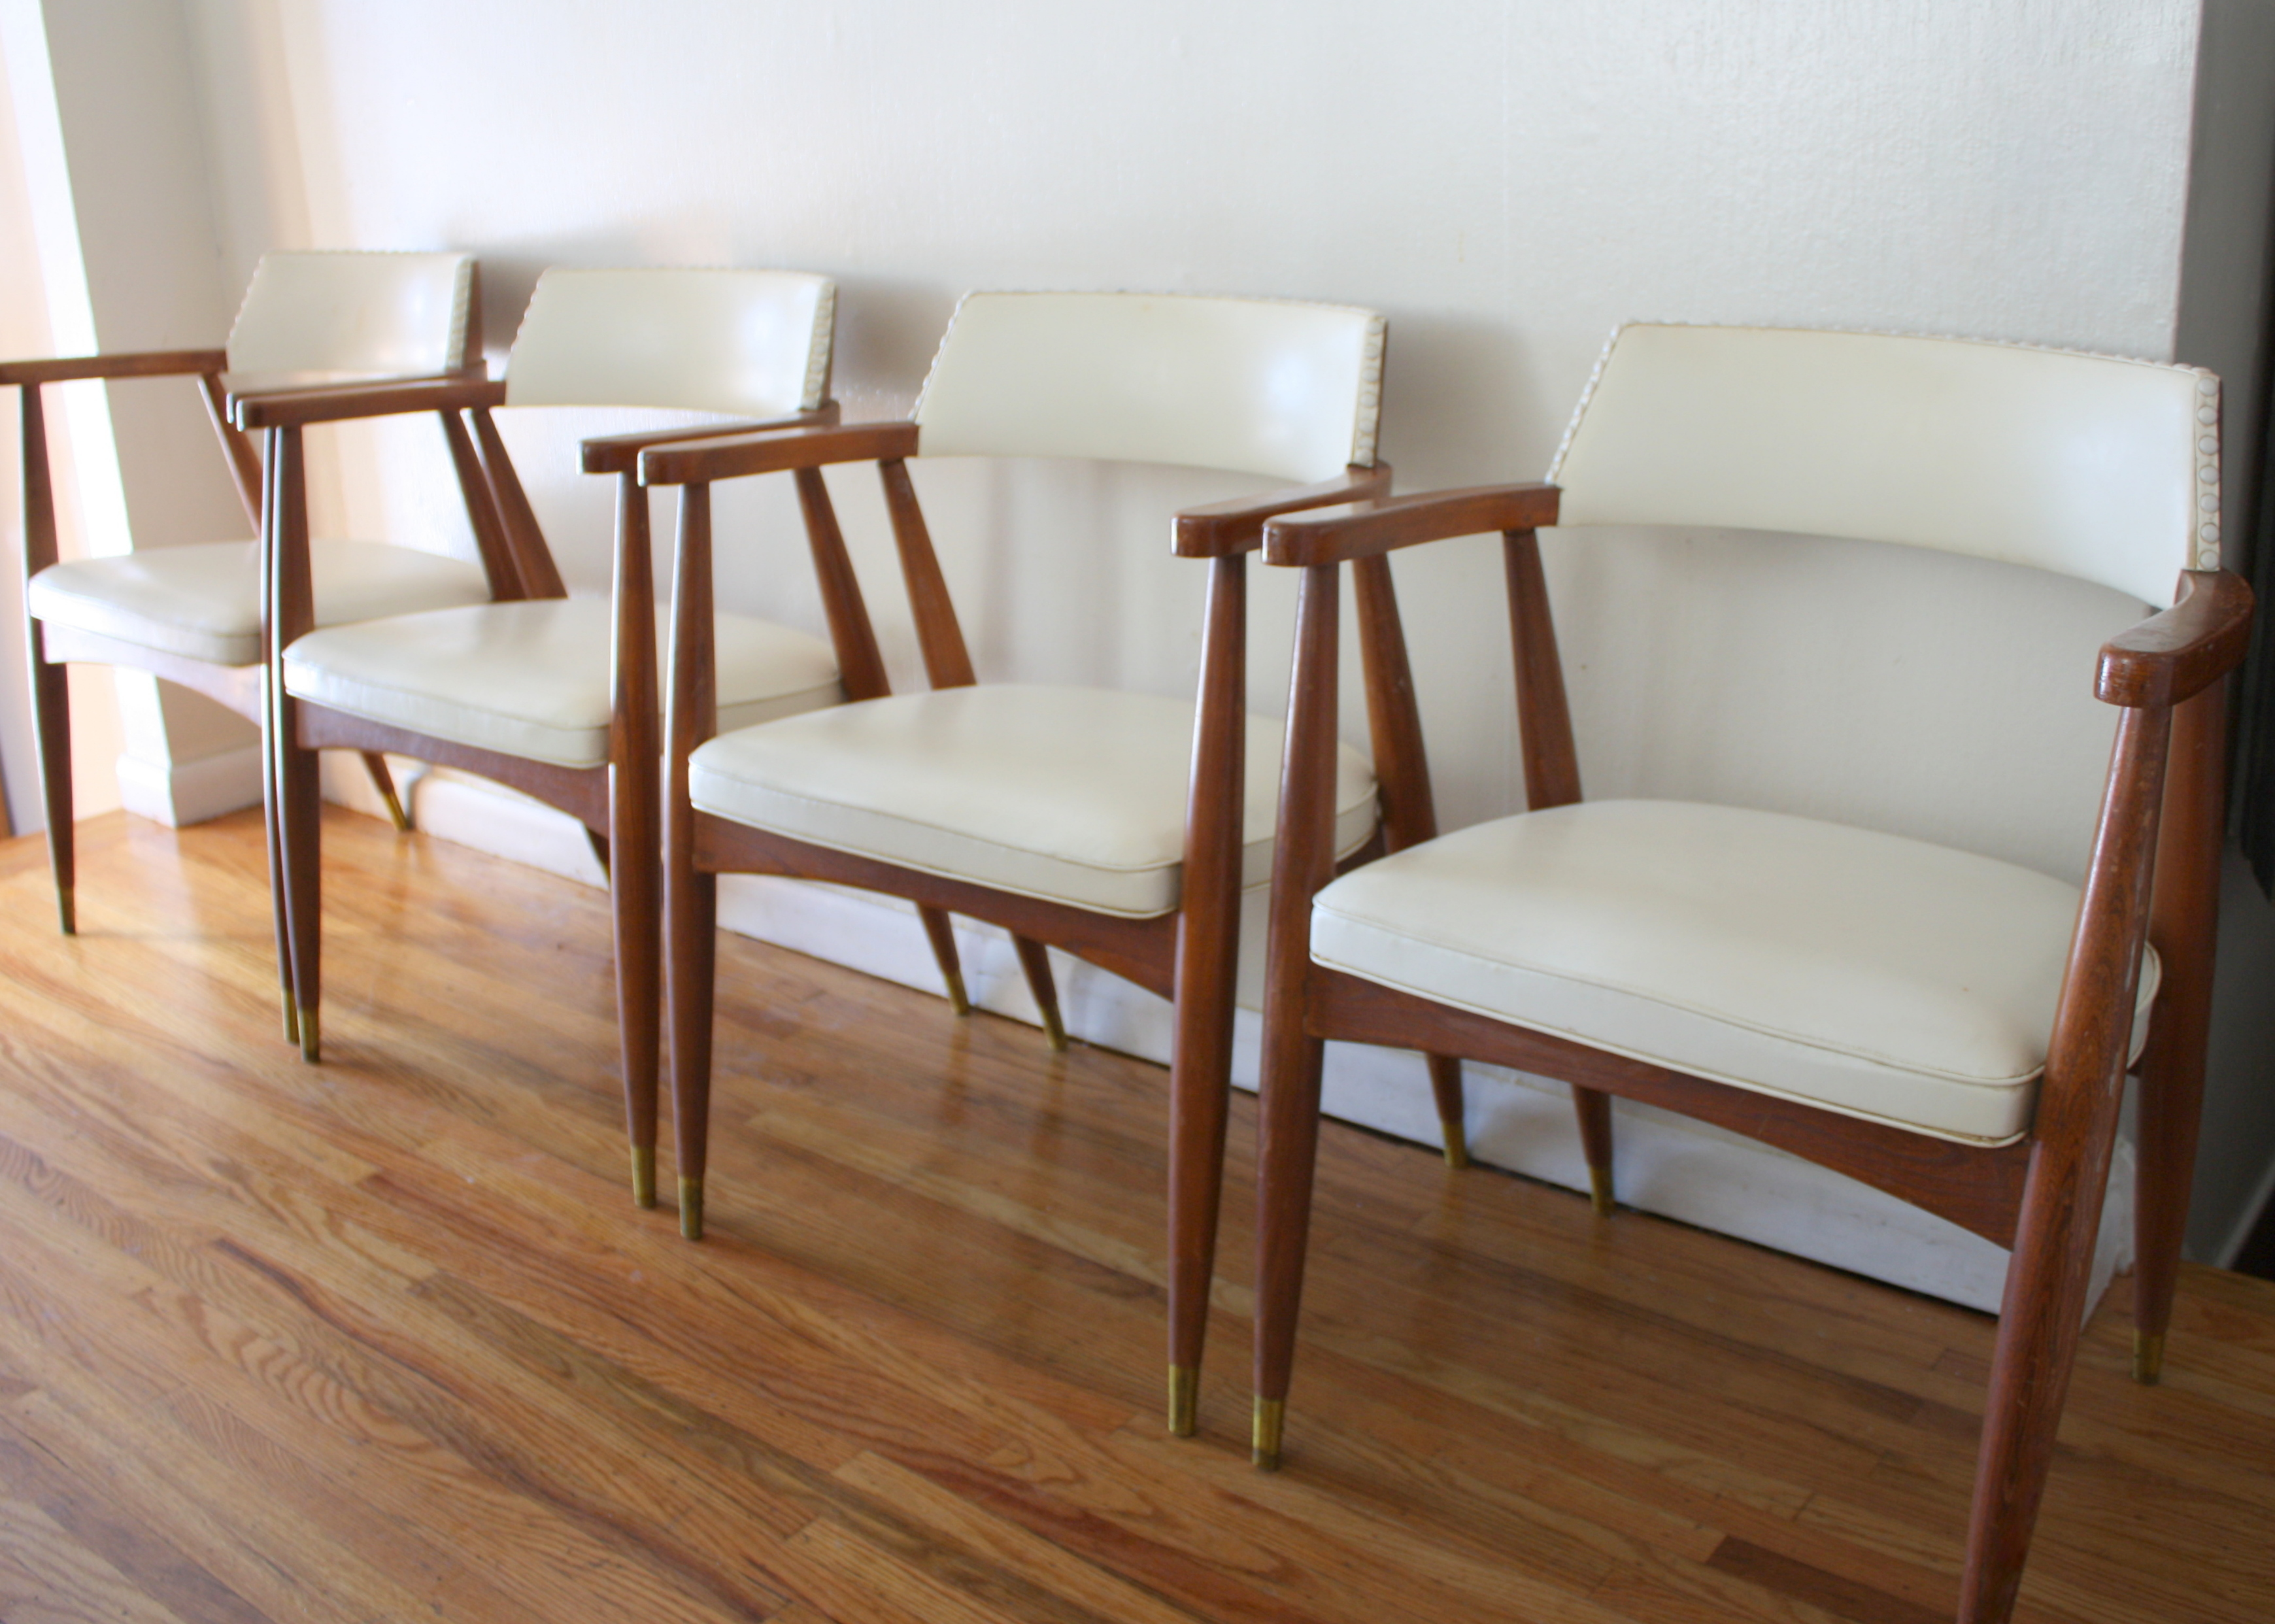 White Barrel Chair Mid Century Modern Arm Chairs Picked Vintage